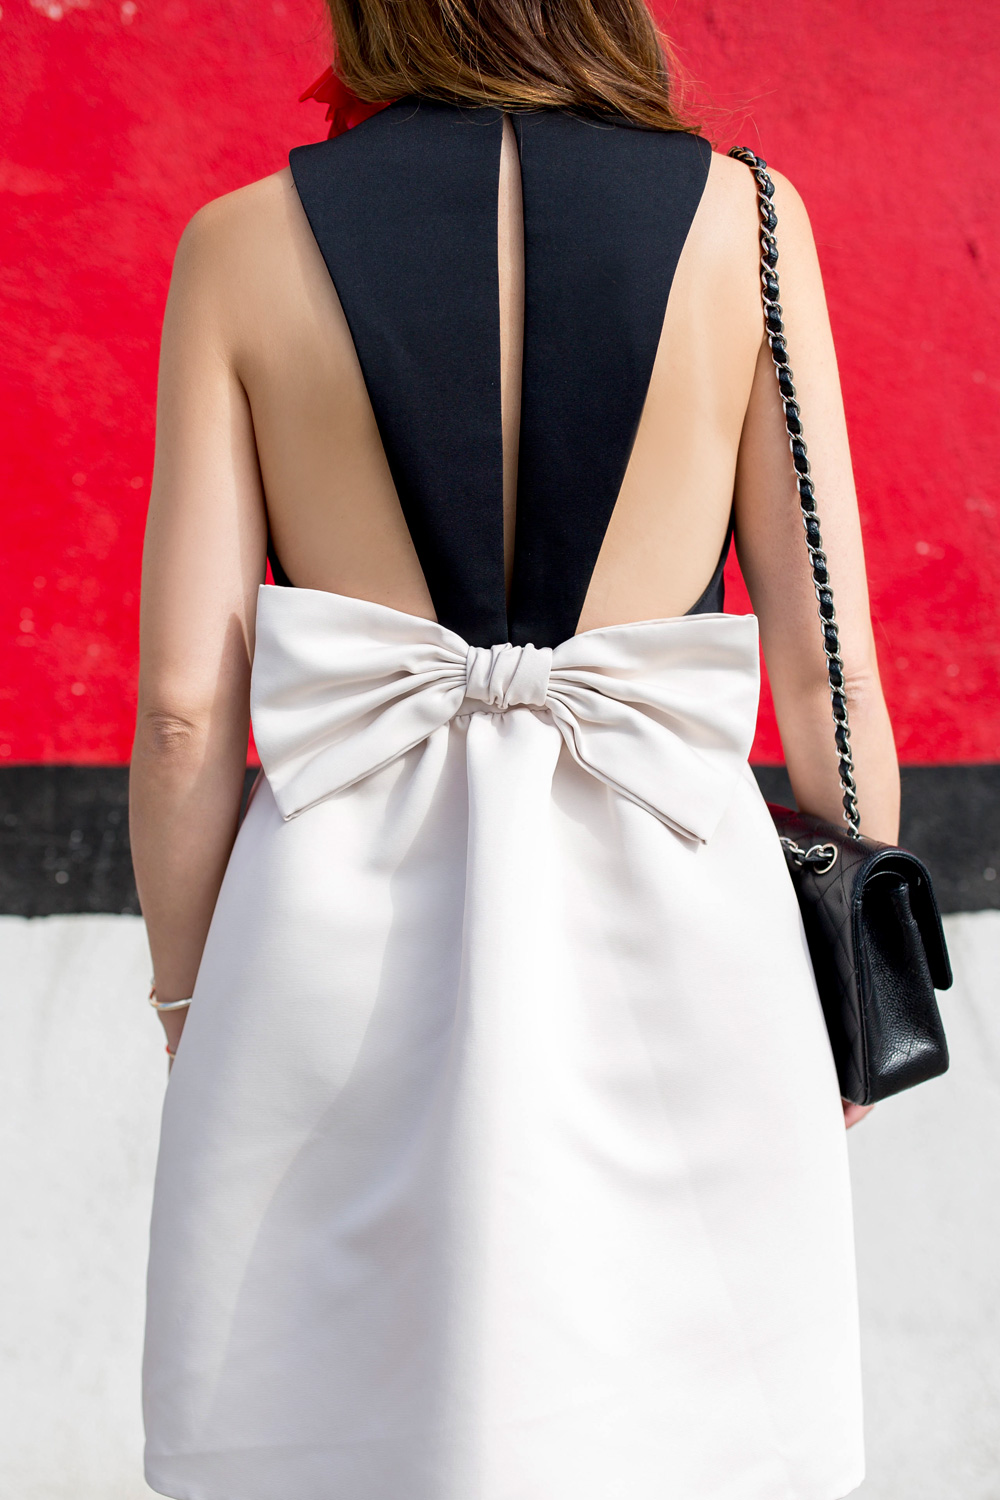 Kate Spade Black White Bow Dress